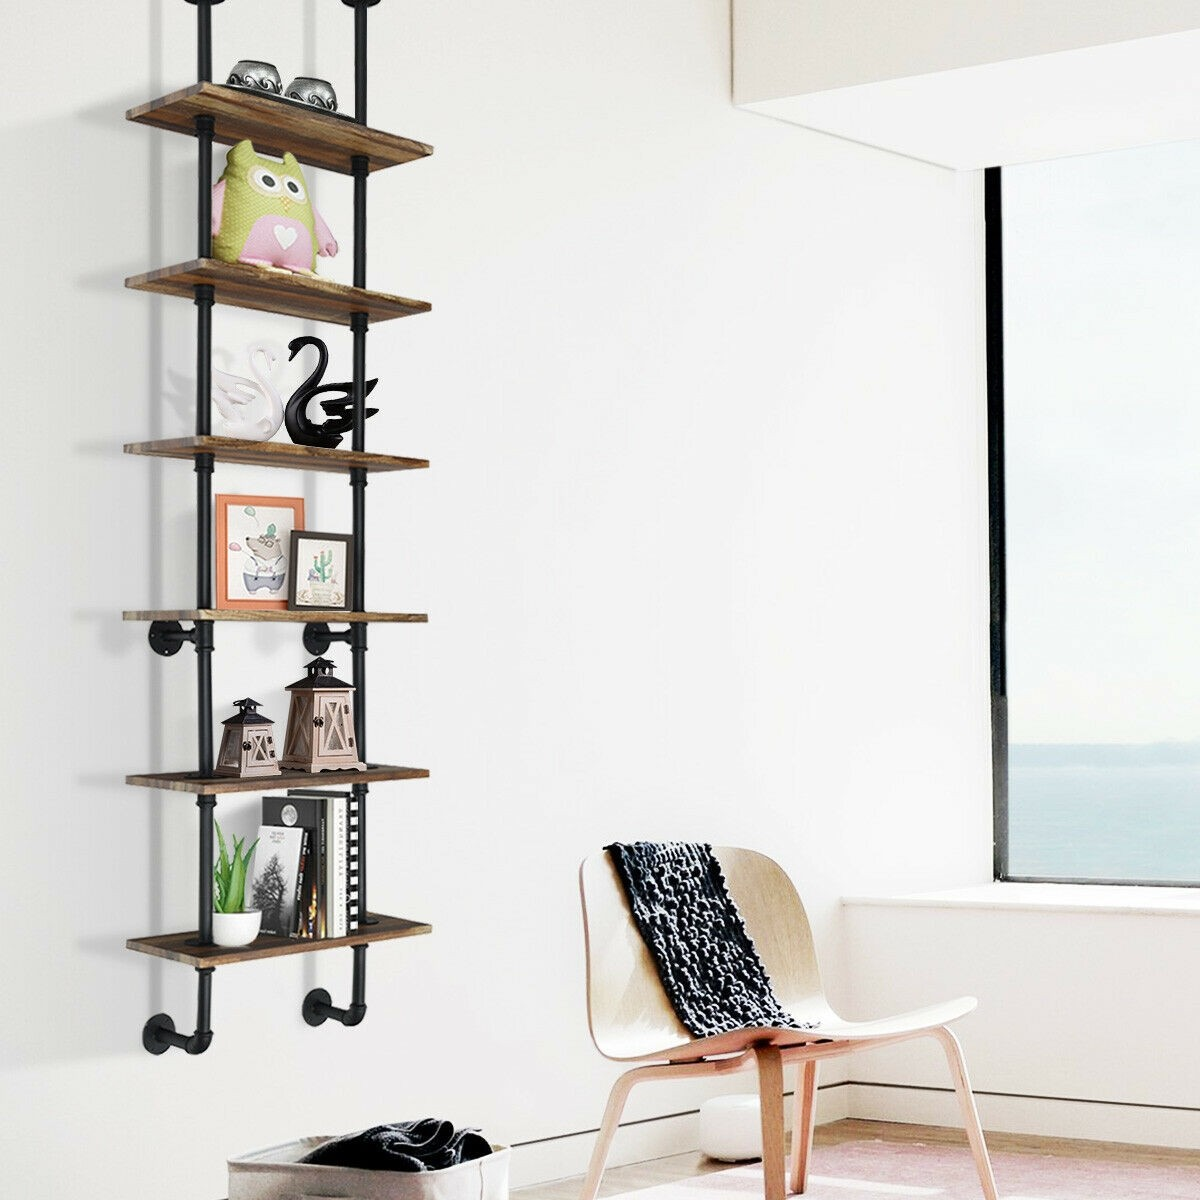 Details About Mid Century Wall Shelf Tall Vintage Industrial Shelving Unit Metal Water Pipe 6